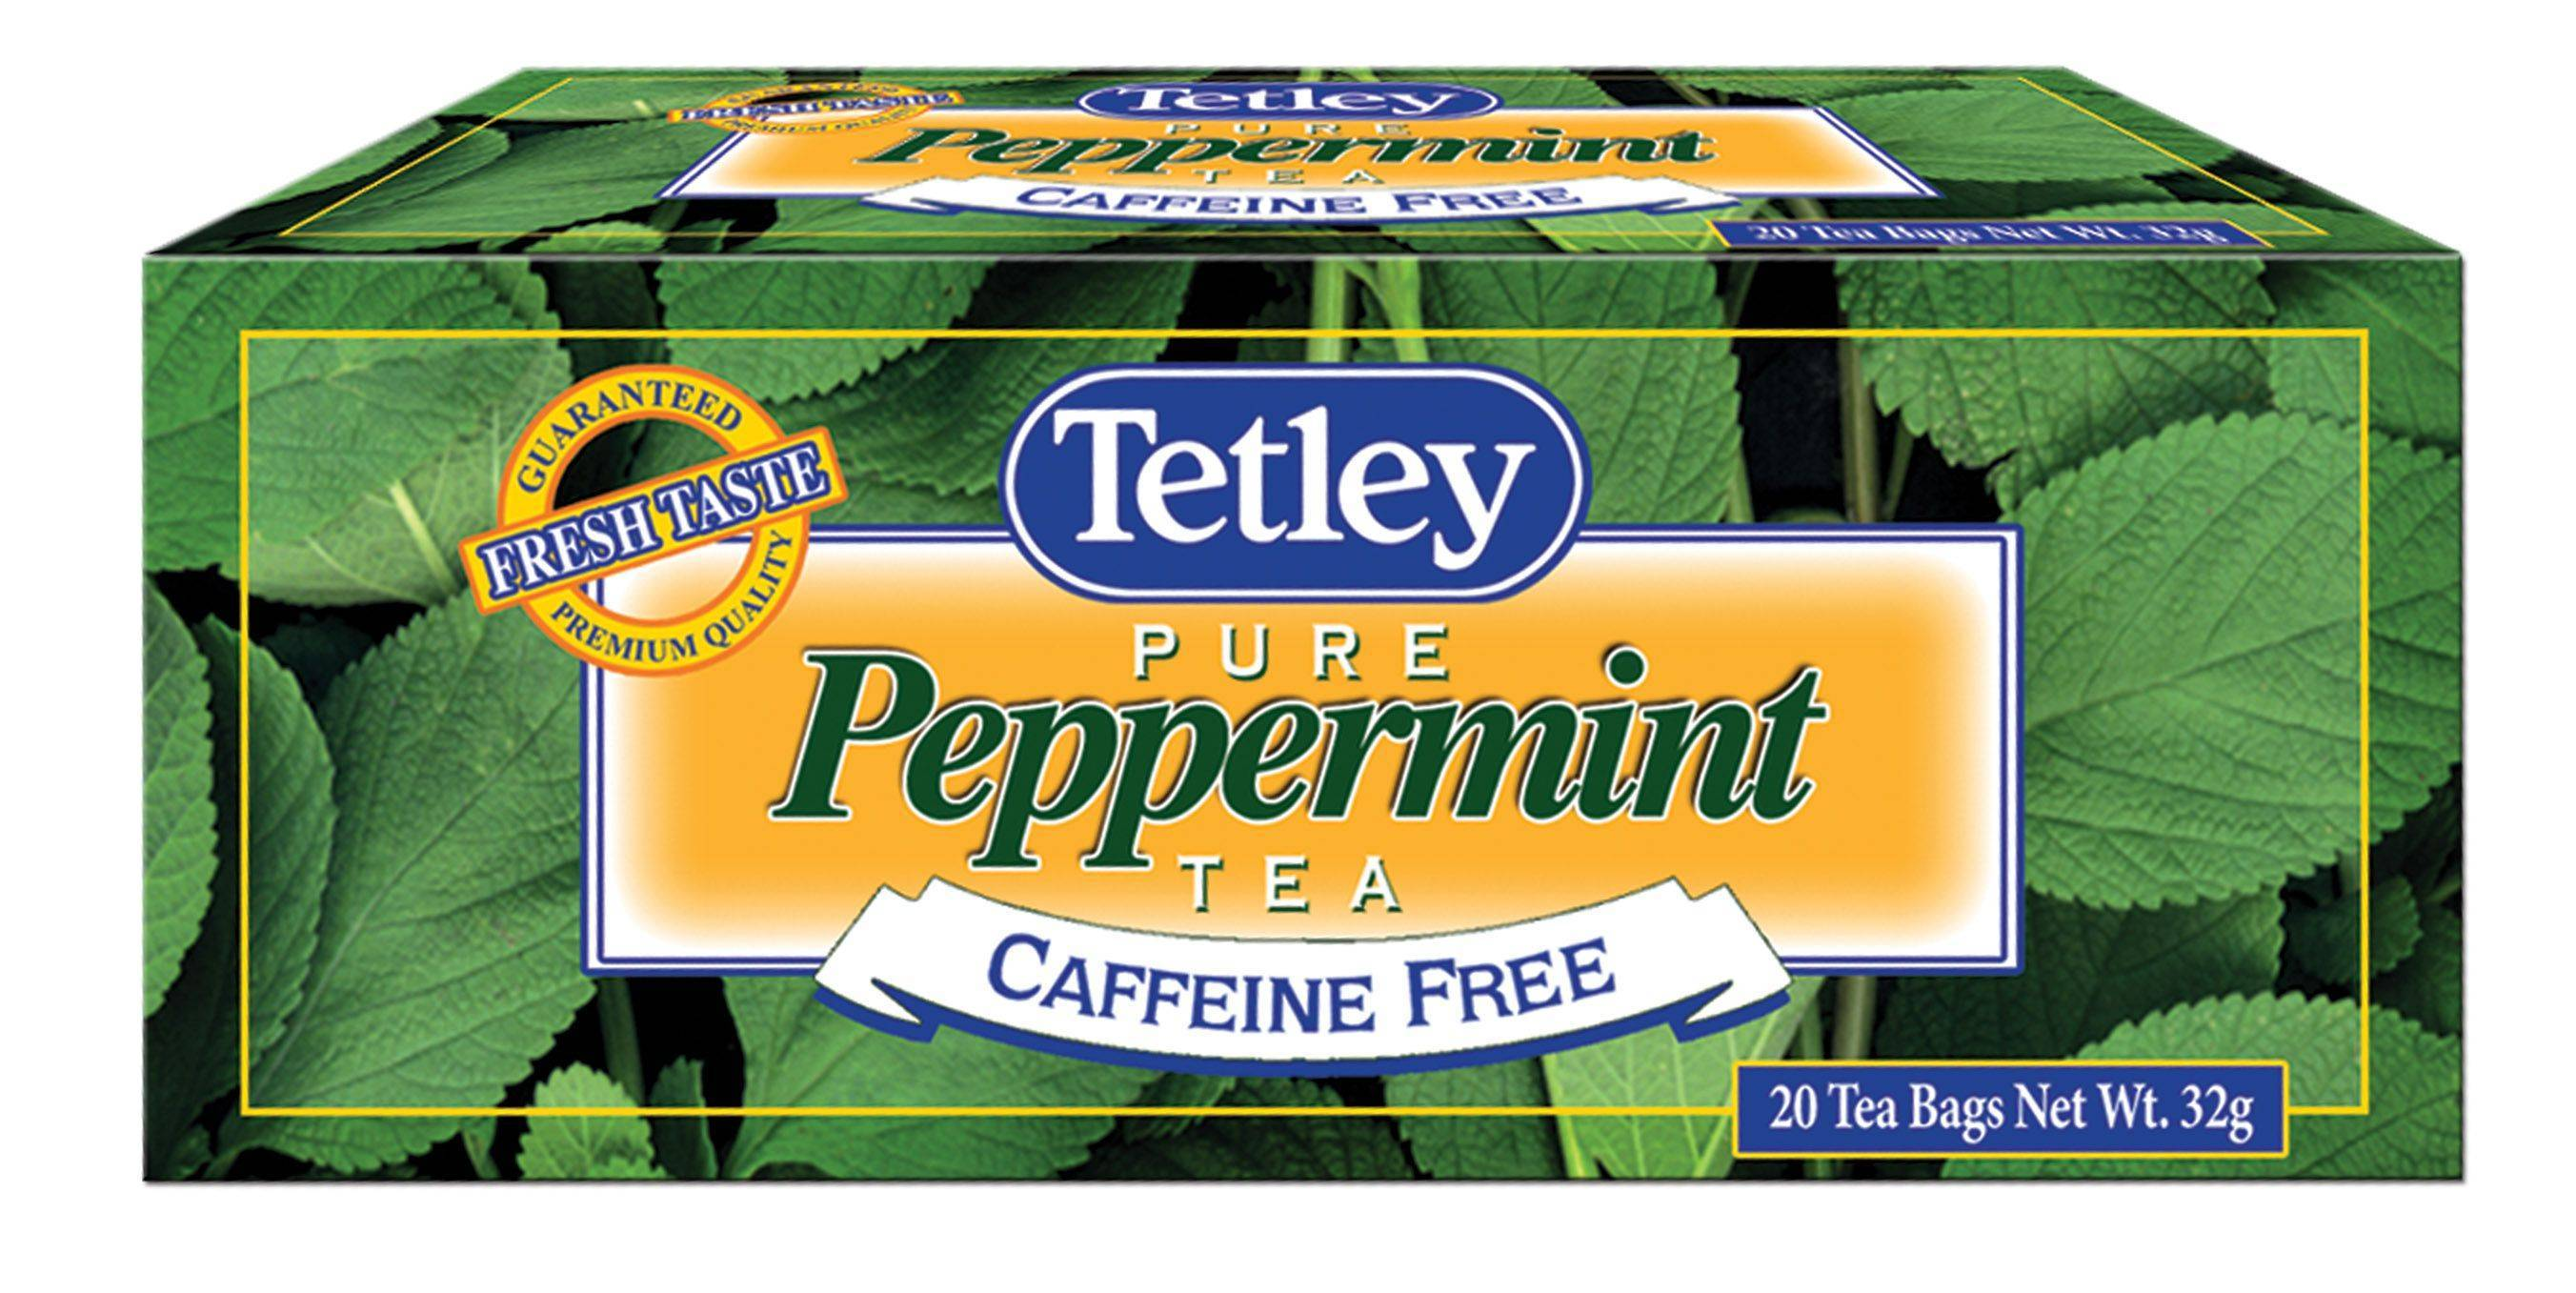 Tetley Peppermint Tea 6pk/20ct